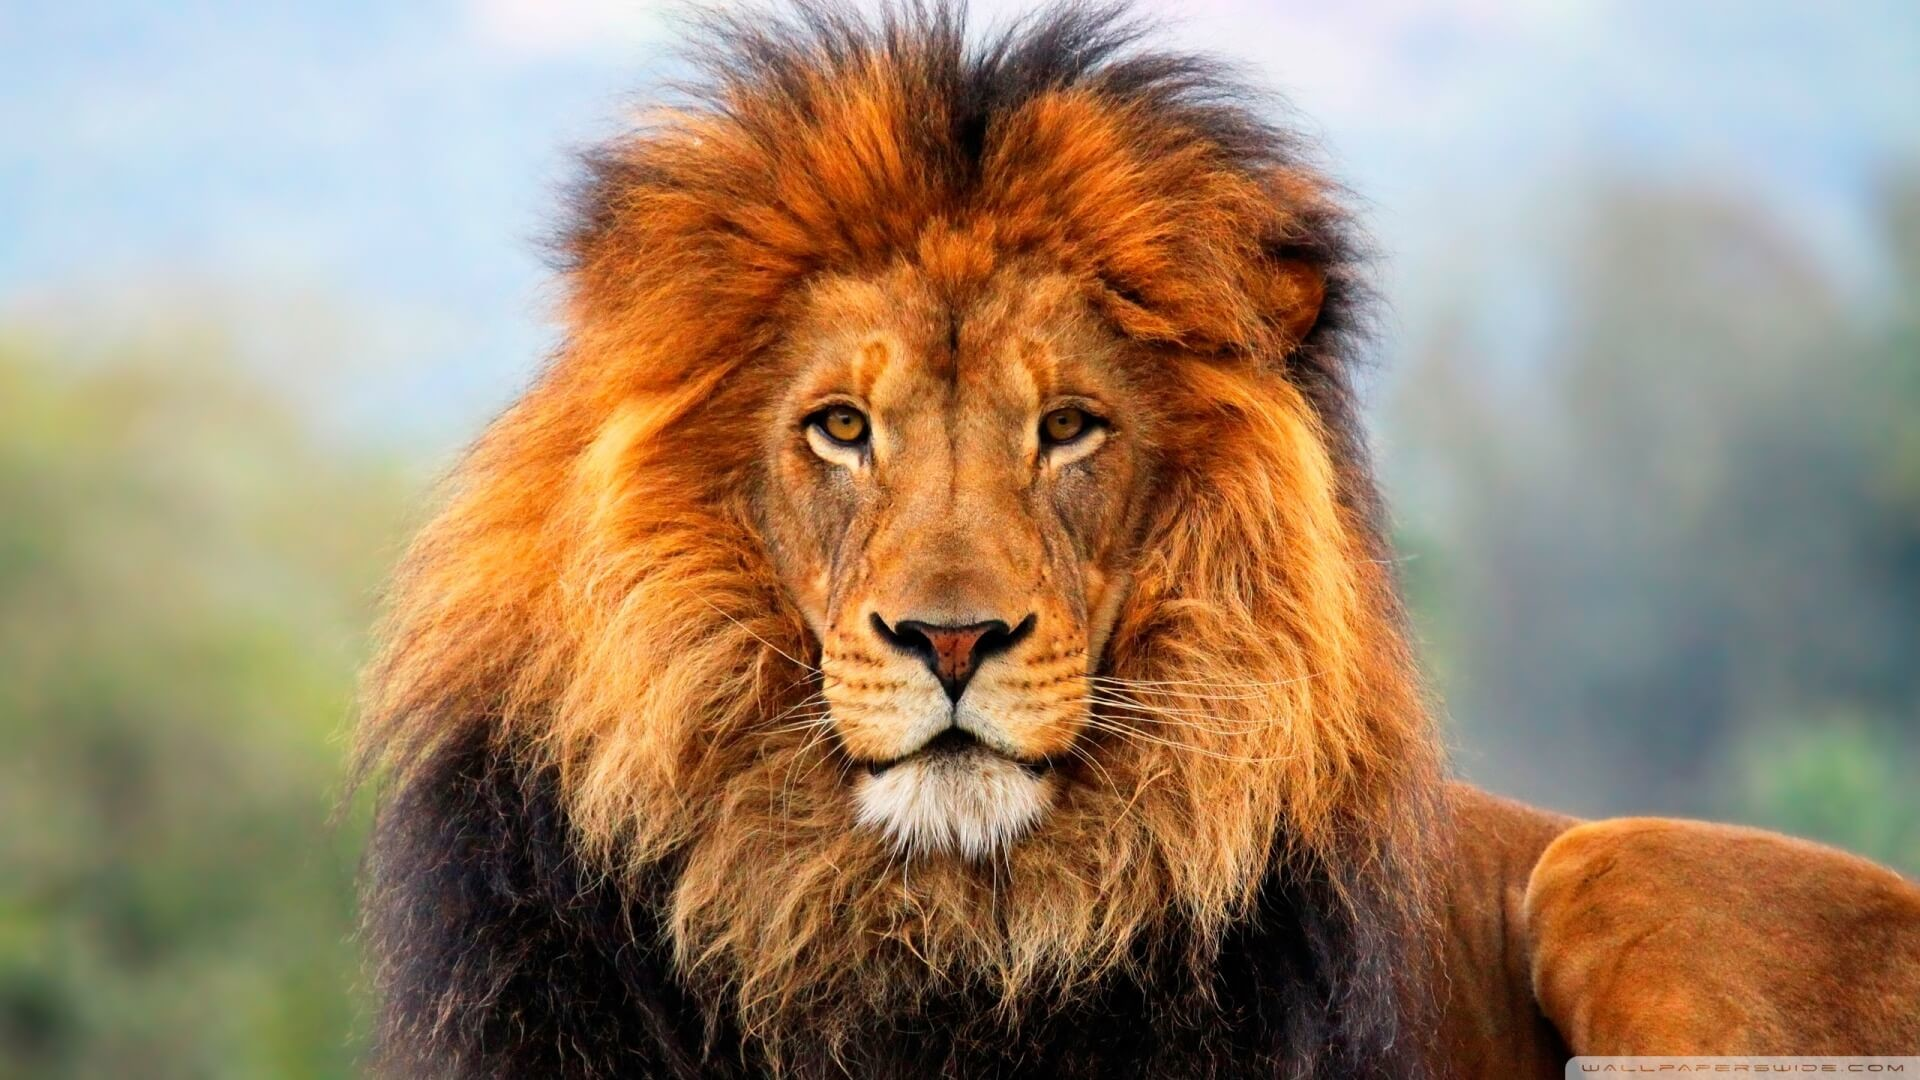 Lion Wallpapers for iPad